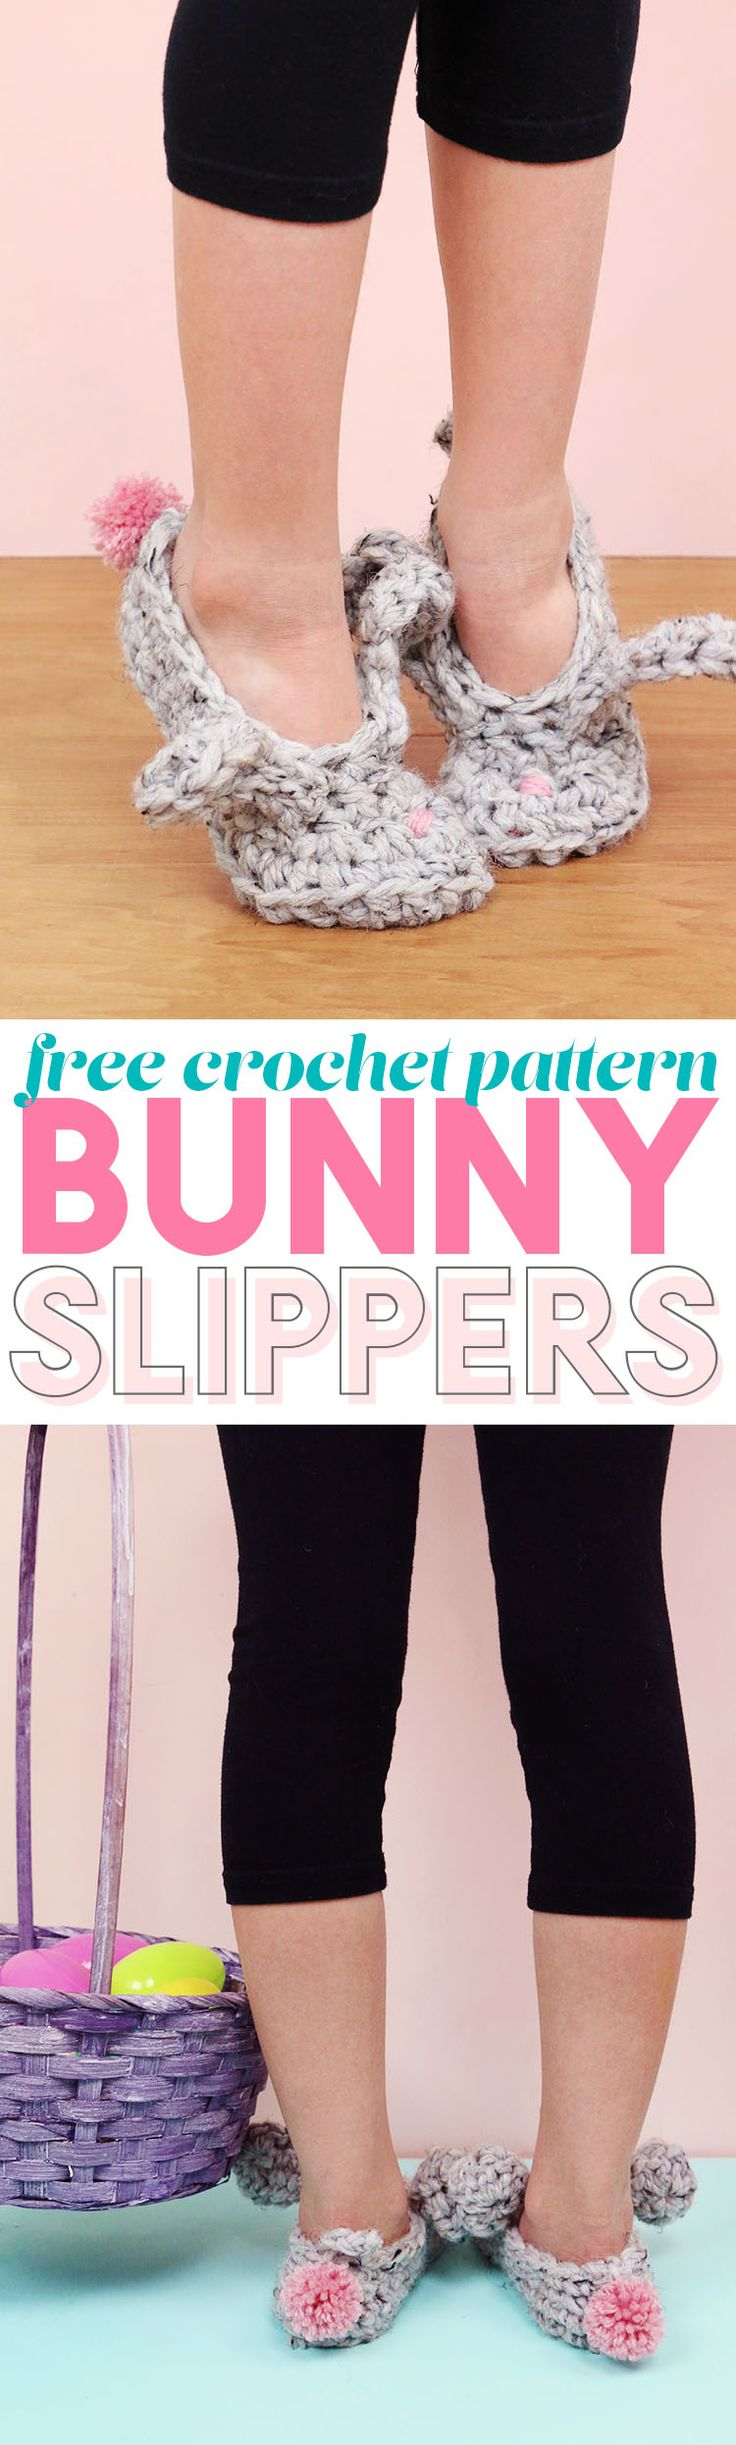 make these cute crochet bunny slippers! free pattern and video tutorial